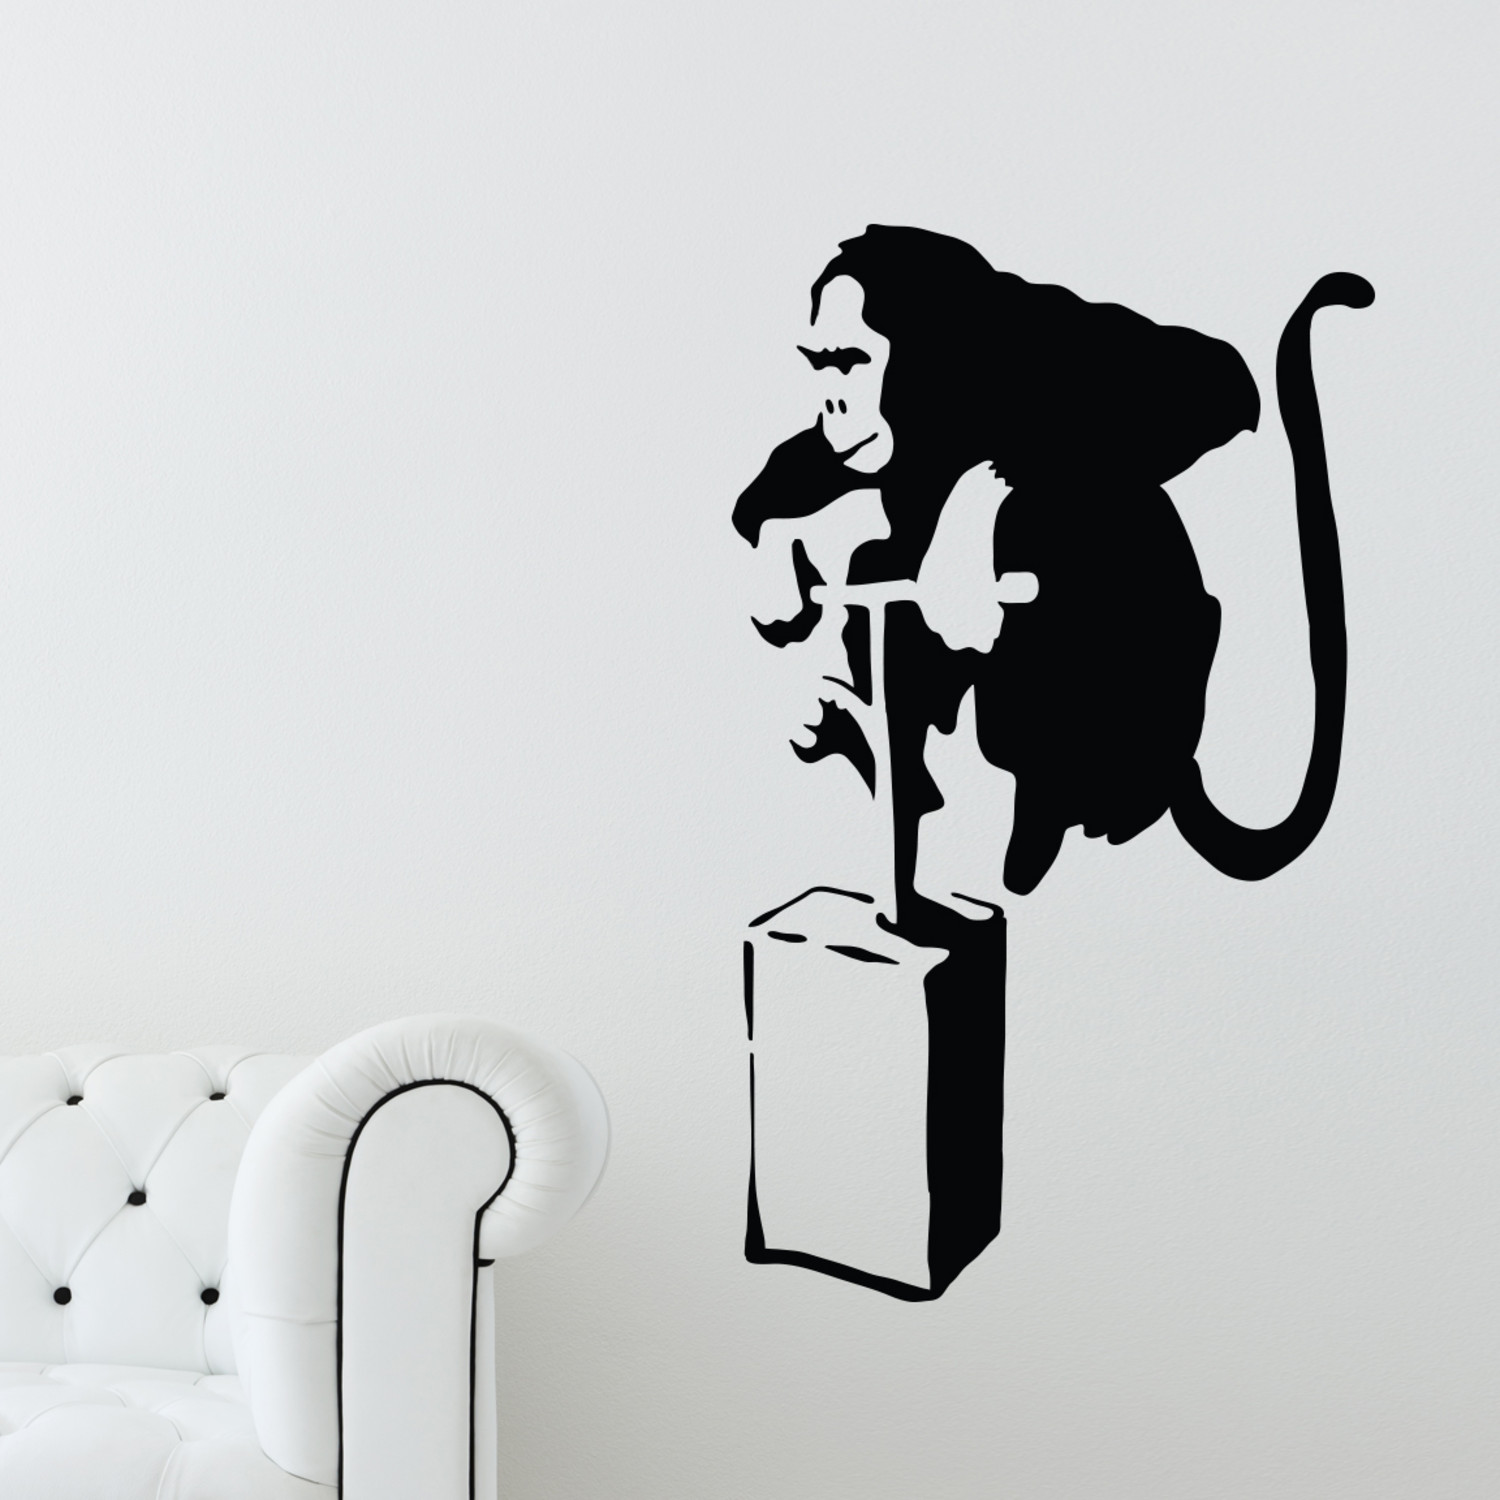 banksy exploding monkey walls need love touch of modern. Black Bedroom Furniture Sets. Home Design Ideas